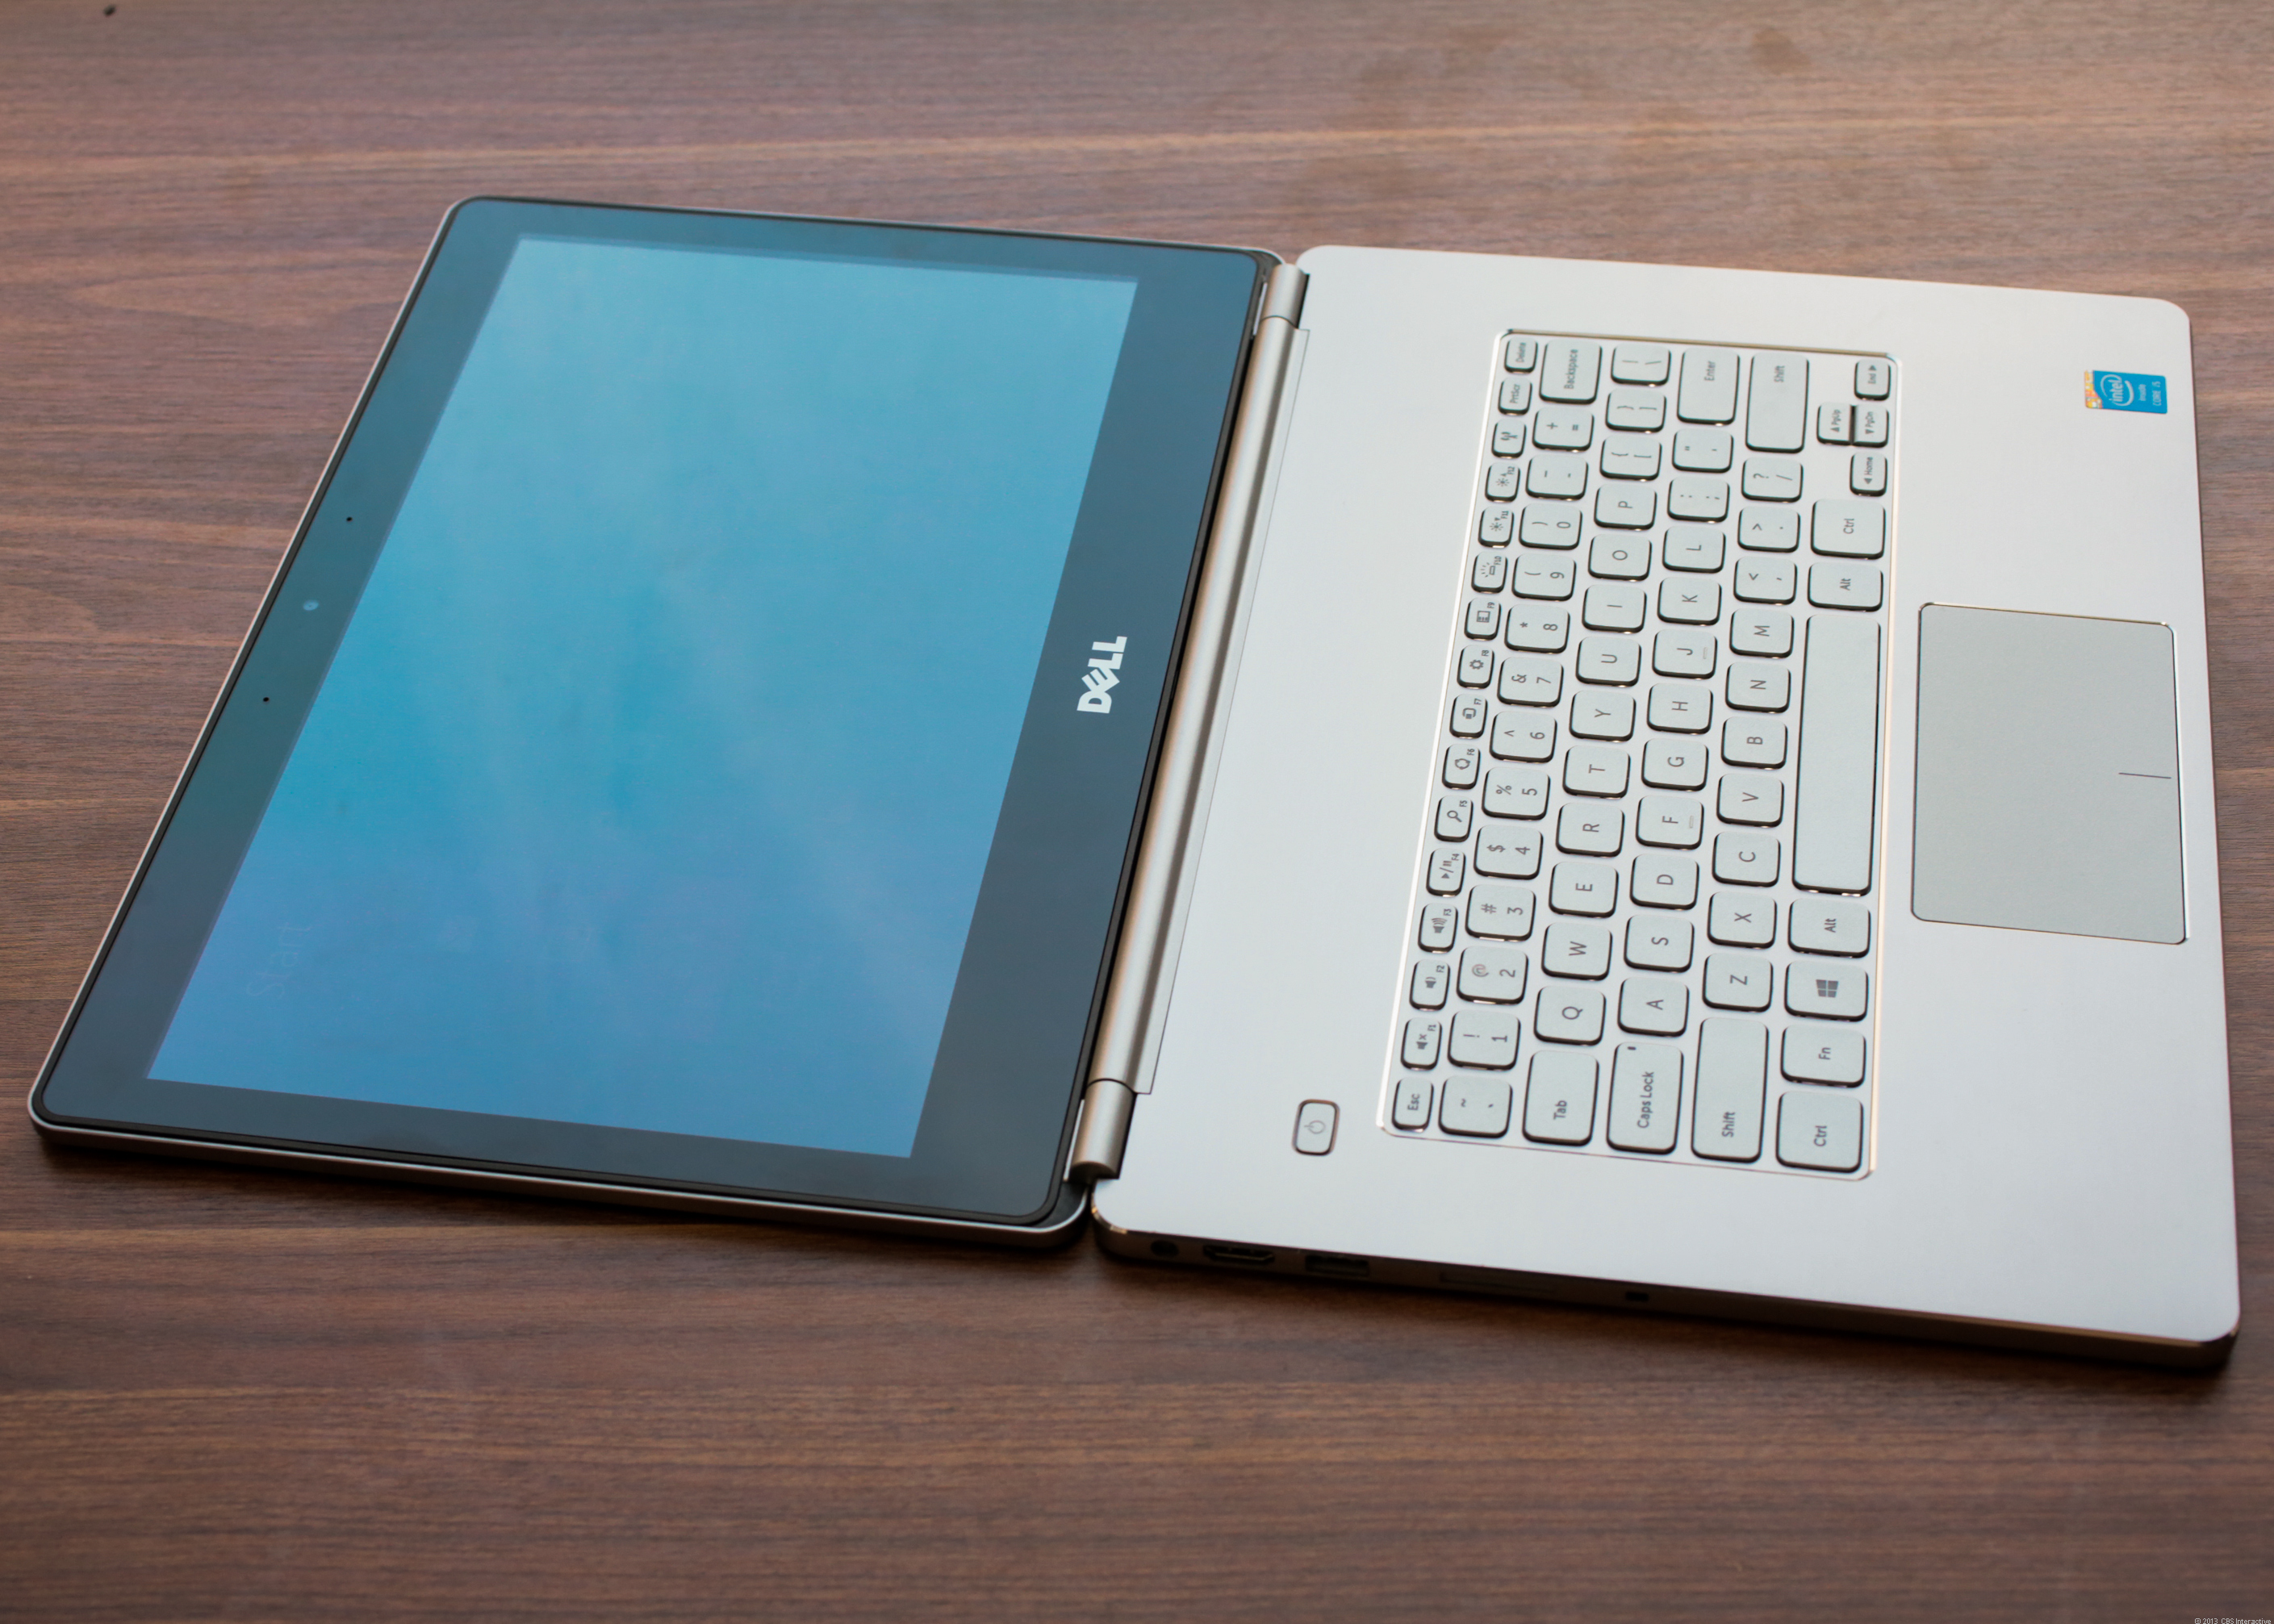 Lay it flat for better touch screen access